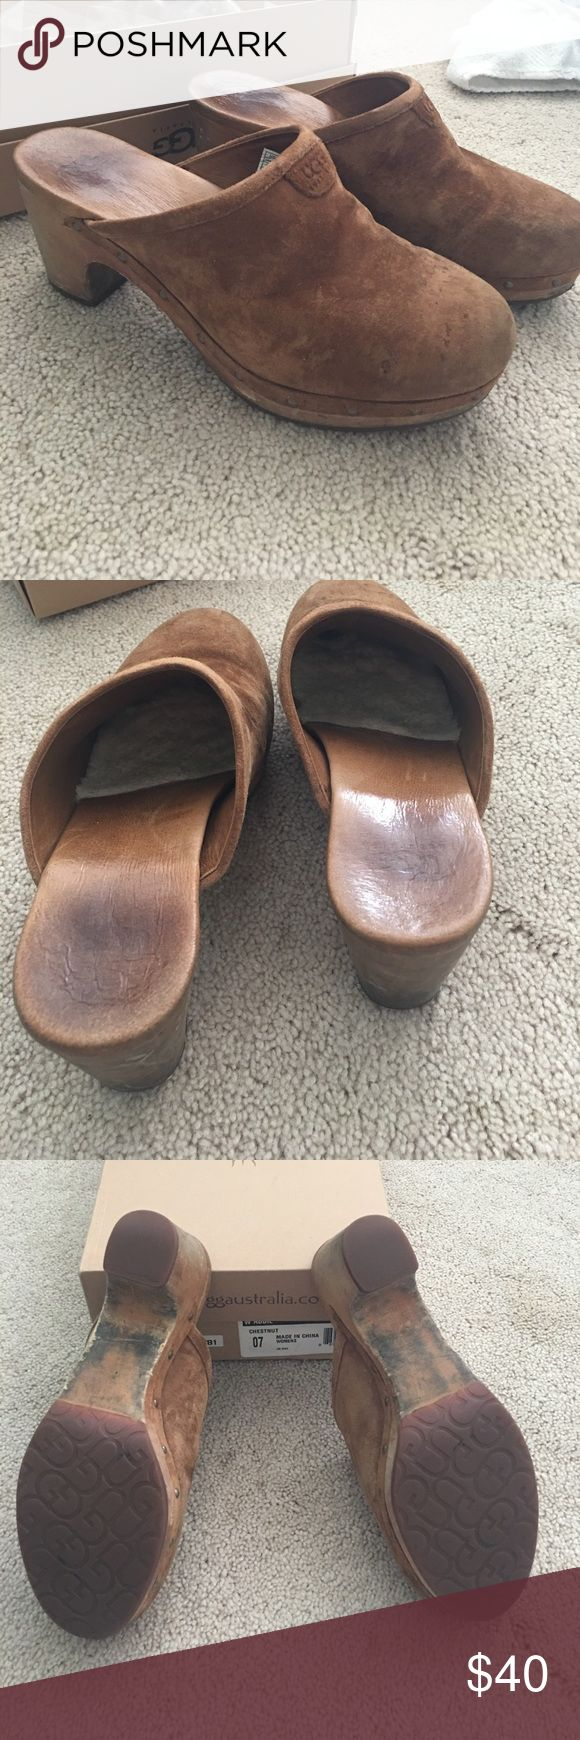 Ugg size 7 suede mule clogs with wooden heal These are awesoem and timeless.  The clogs are the perfect height for a little lift. They are lined on the inside loft extra warm. A beautiful chestnut suede. Included the original box- minimal wear UGG Shoes Mules & Clogs